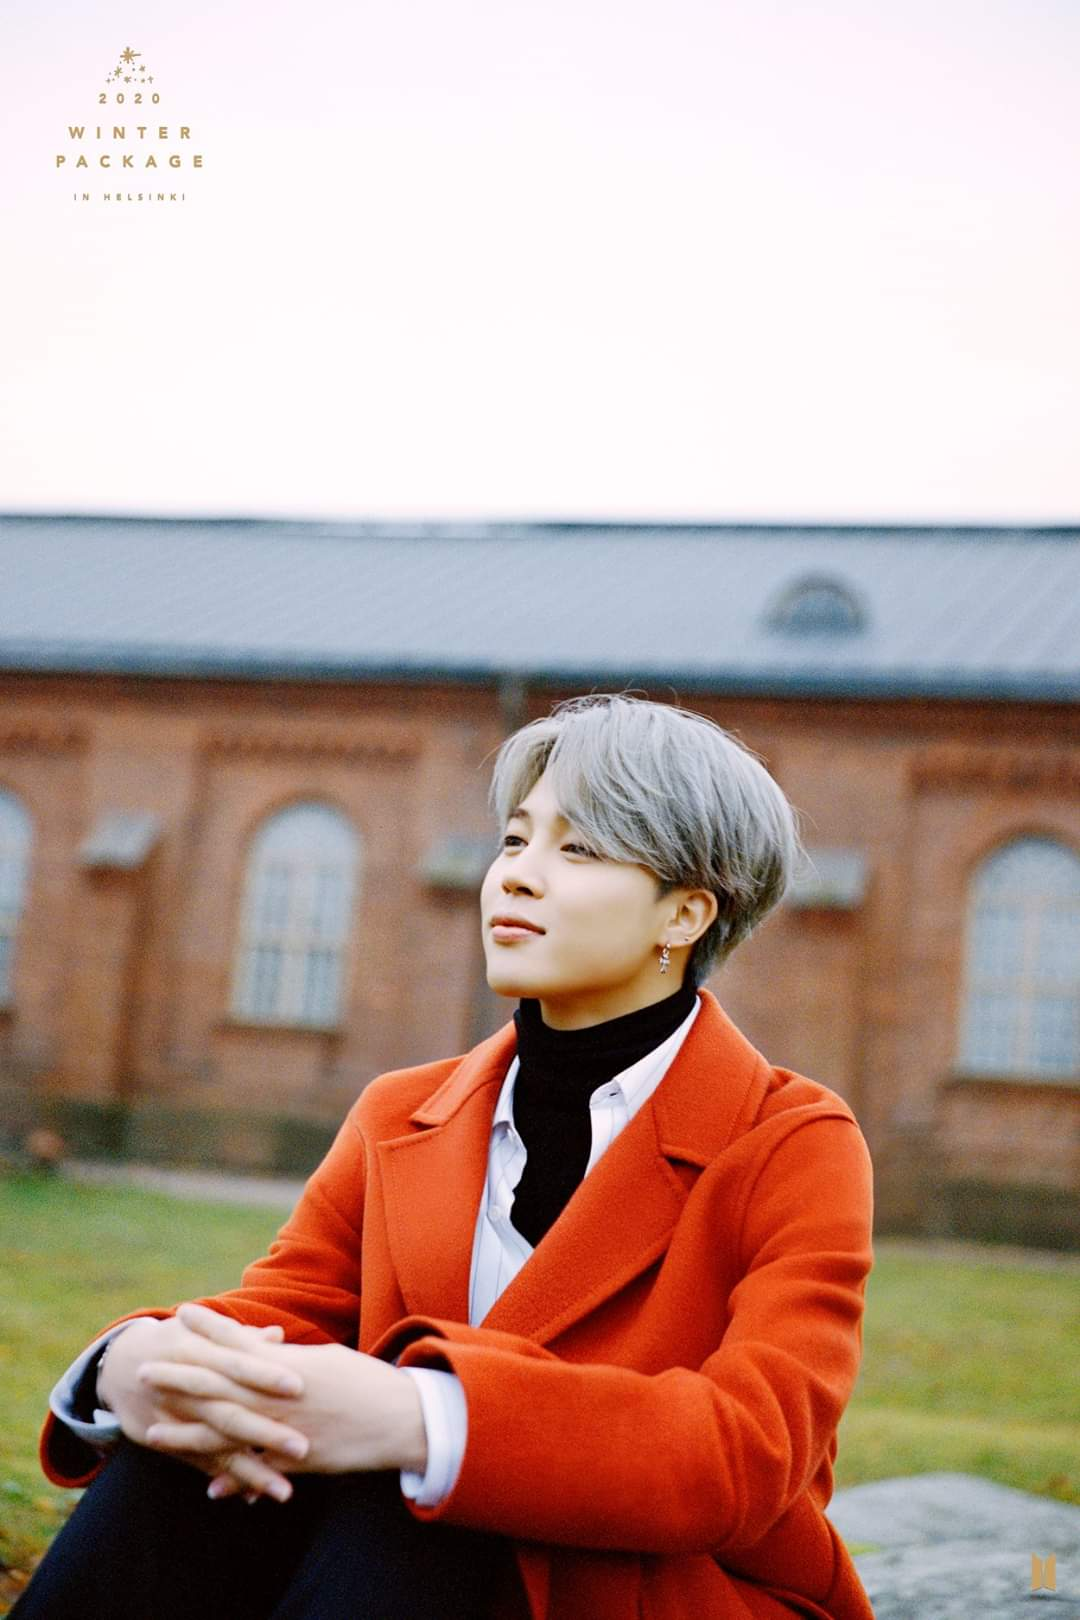 Park Jimin Ph On Twitter Bts 2020 Winter Package Preview Cuts